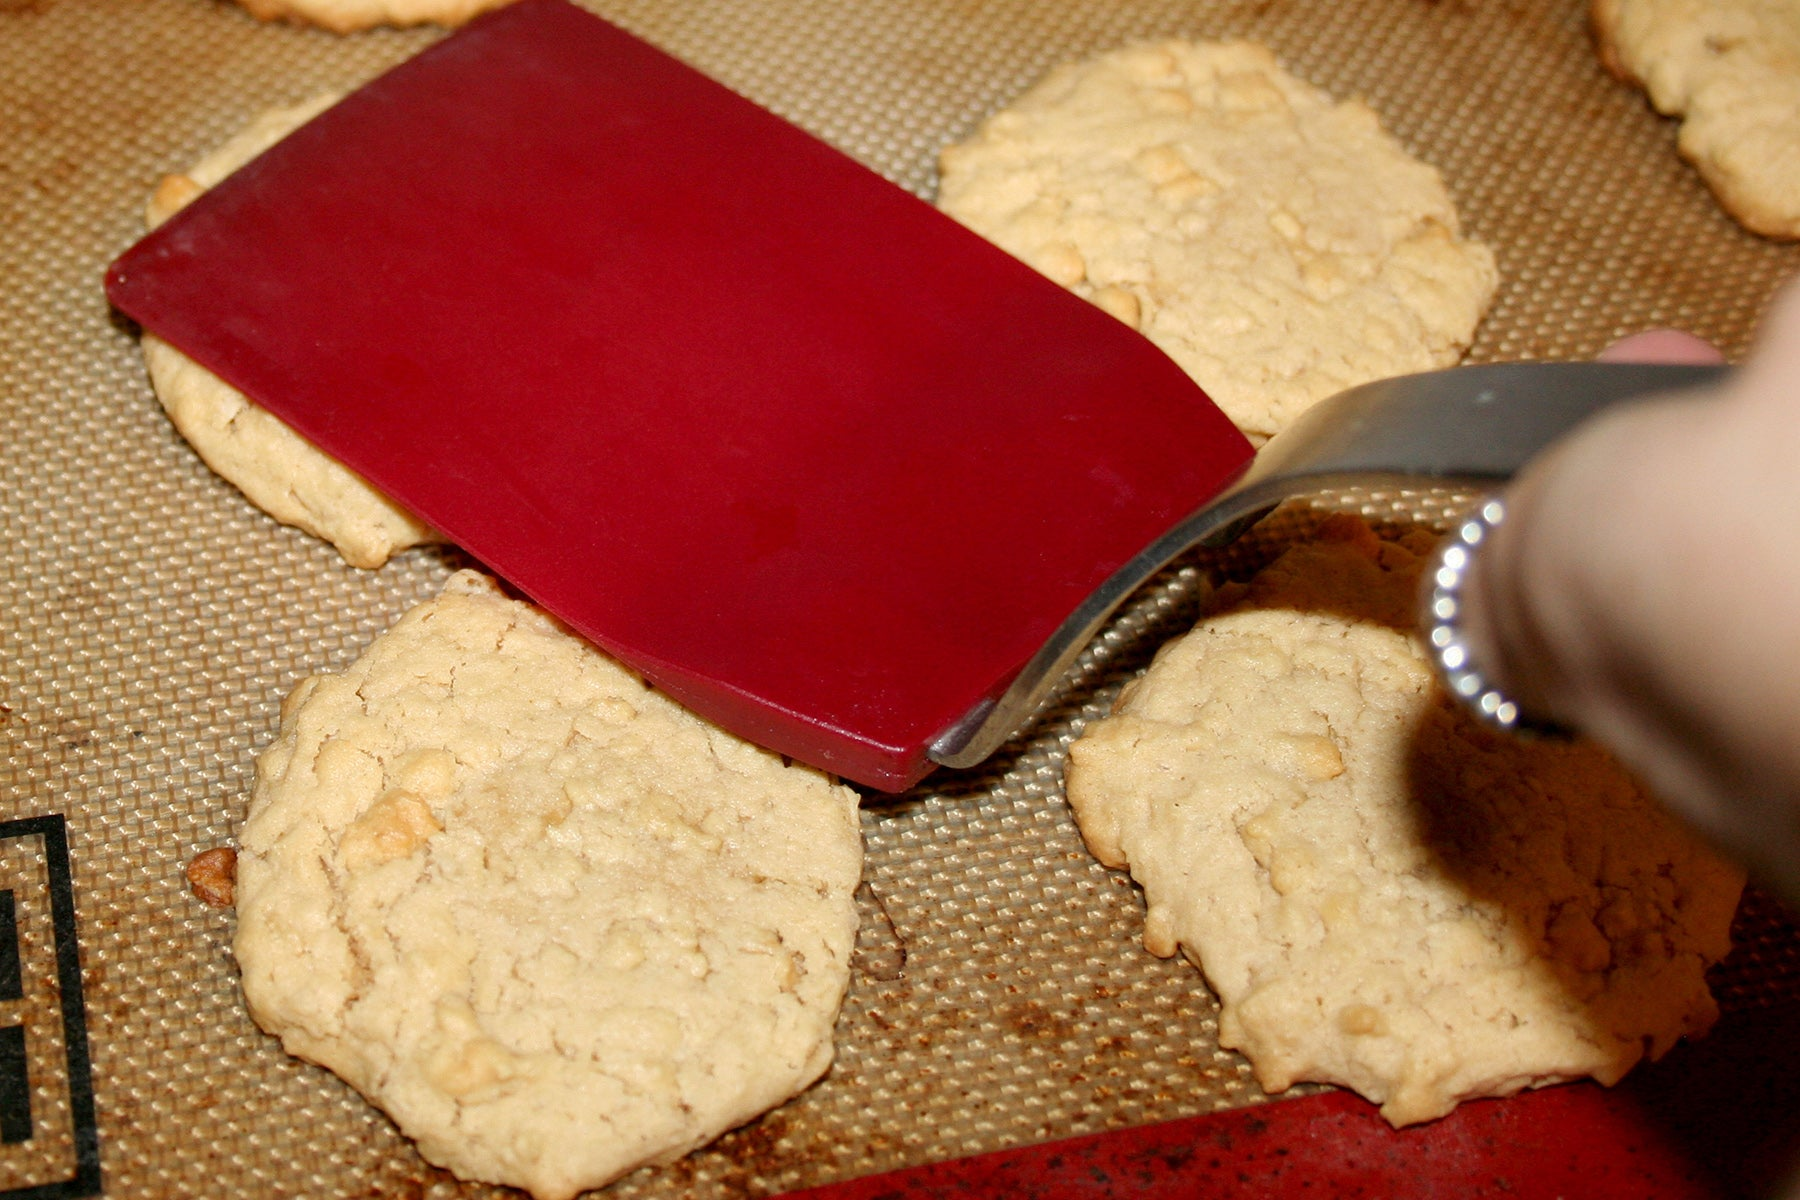 Homemade Girl Scout Cookies: Smooth Operator Do-Si-Dos® - Bake for 10-12 minutes